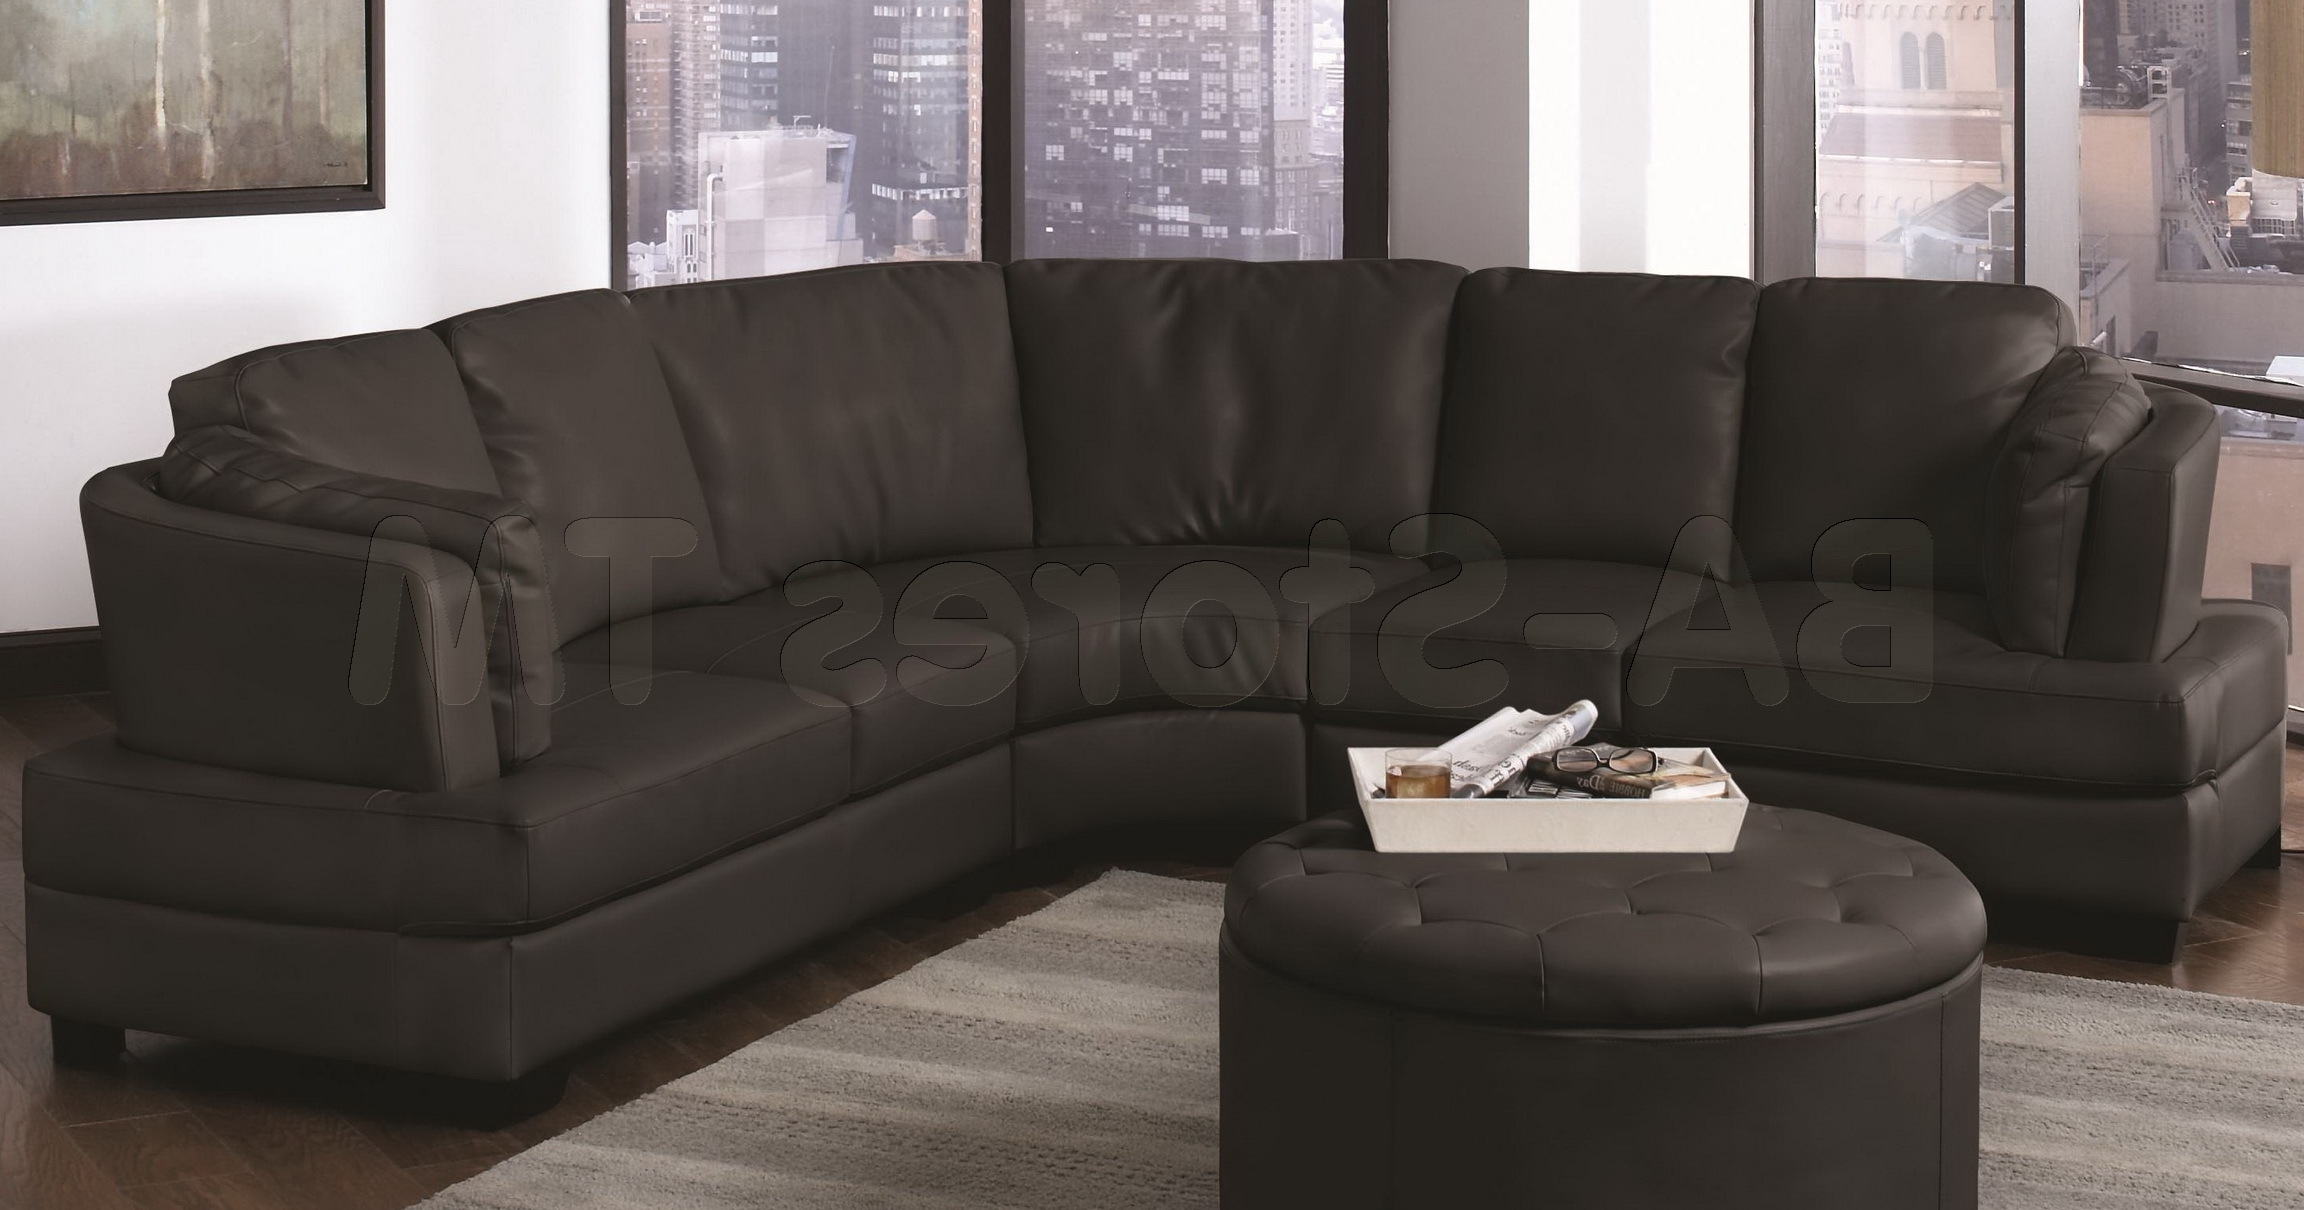 Recent Circular Sectional Sofas With Regard To Trend Circular Sectional Sofa 57 With Additional Living Room Sofa (View 7 of 20)